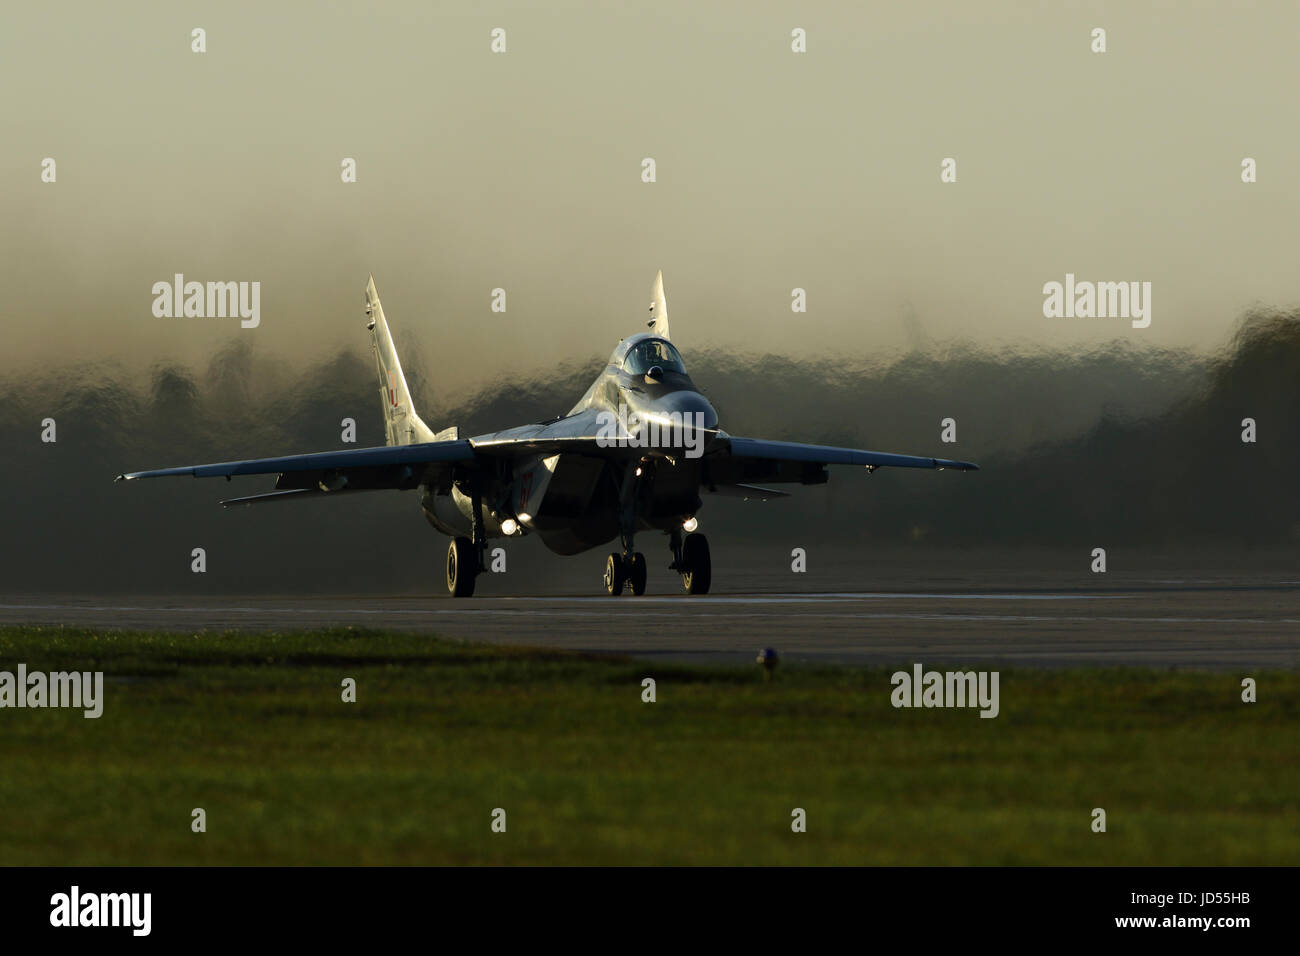 Mikoyan Gurevich Mig 29 Fulcrum Polish air force taking off at dusk at Mińsk Mazowiecki 25 miles from Warsaw Poland Stock Photo